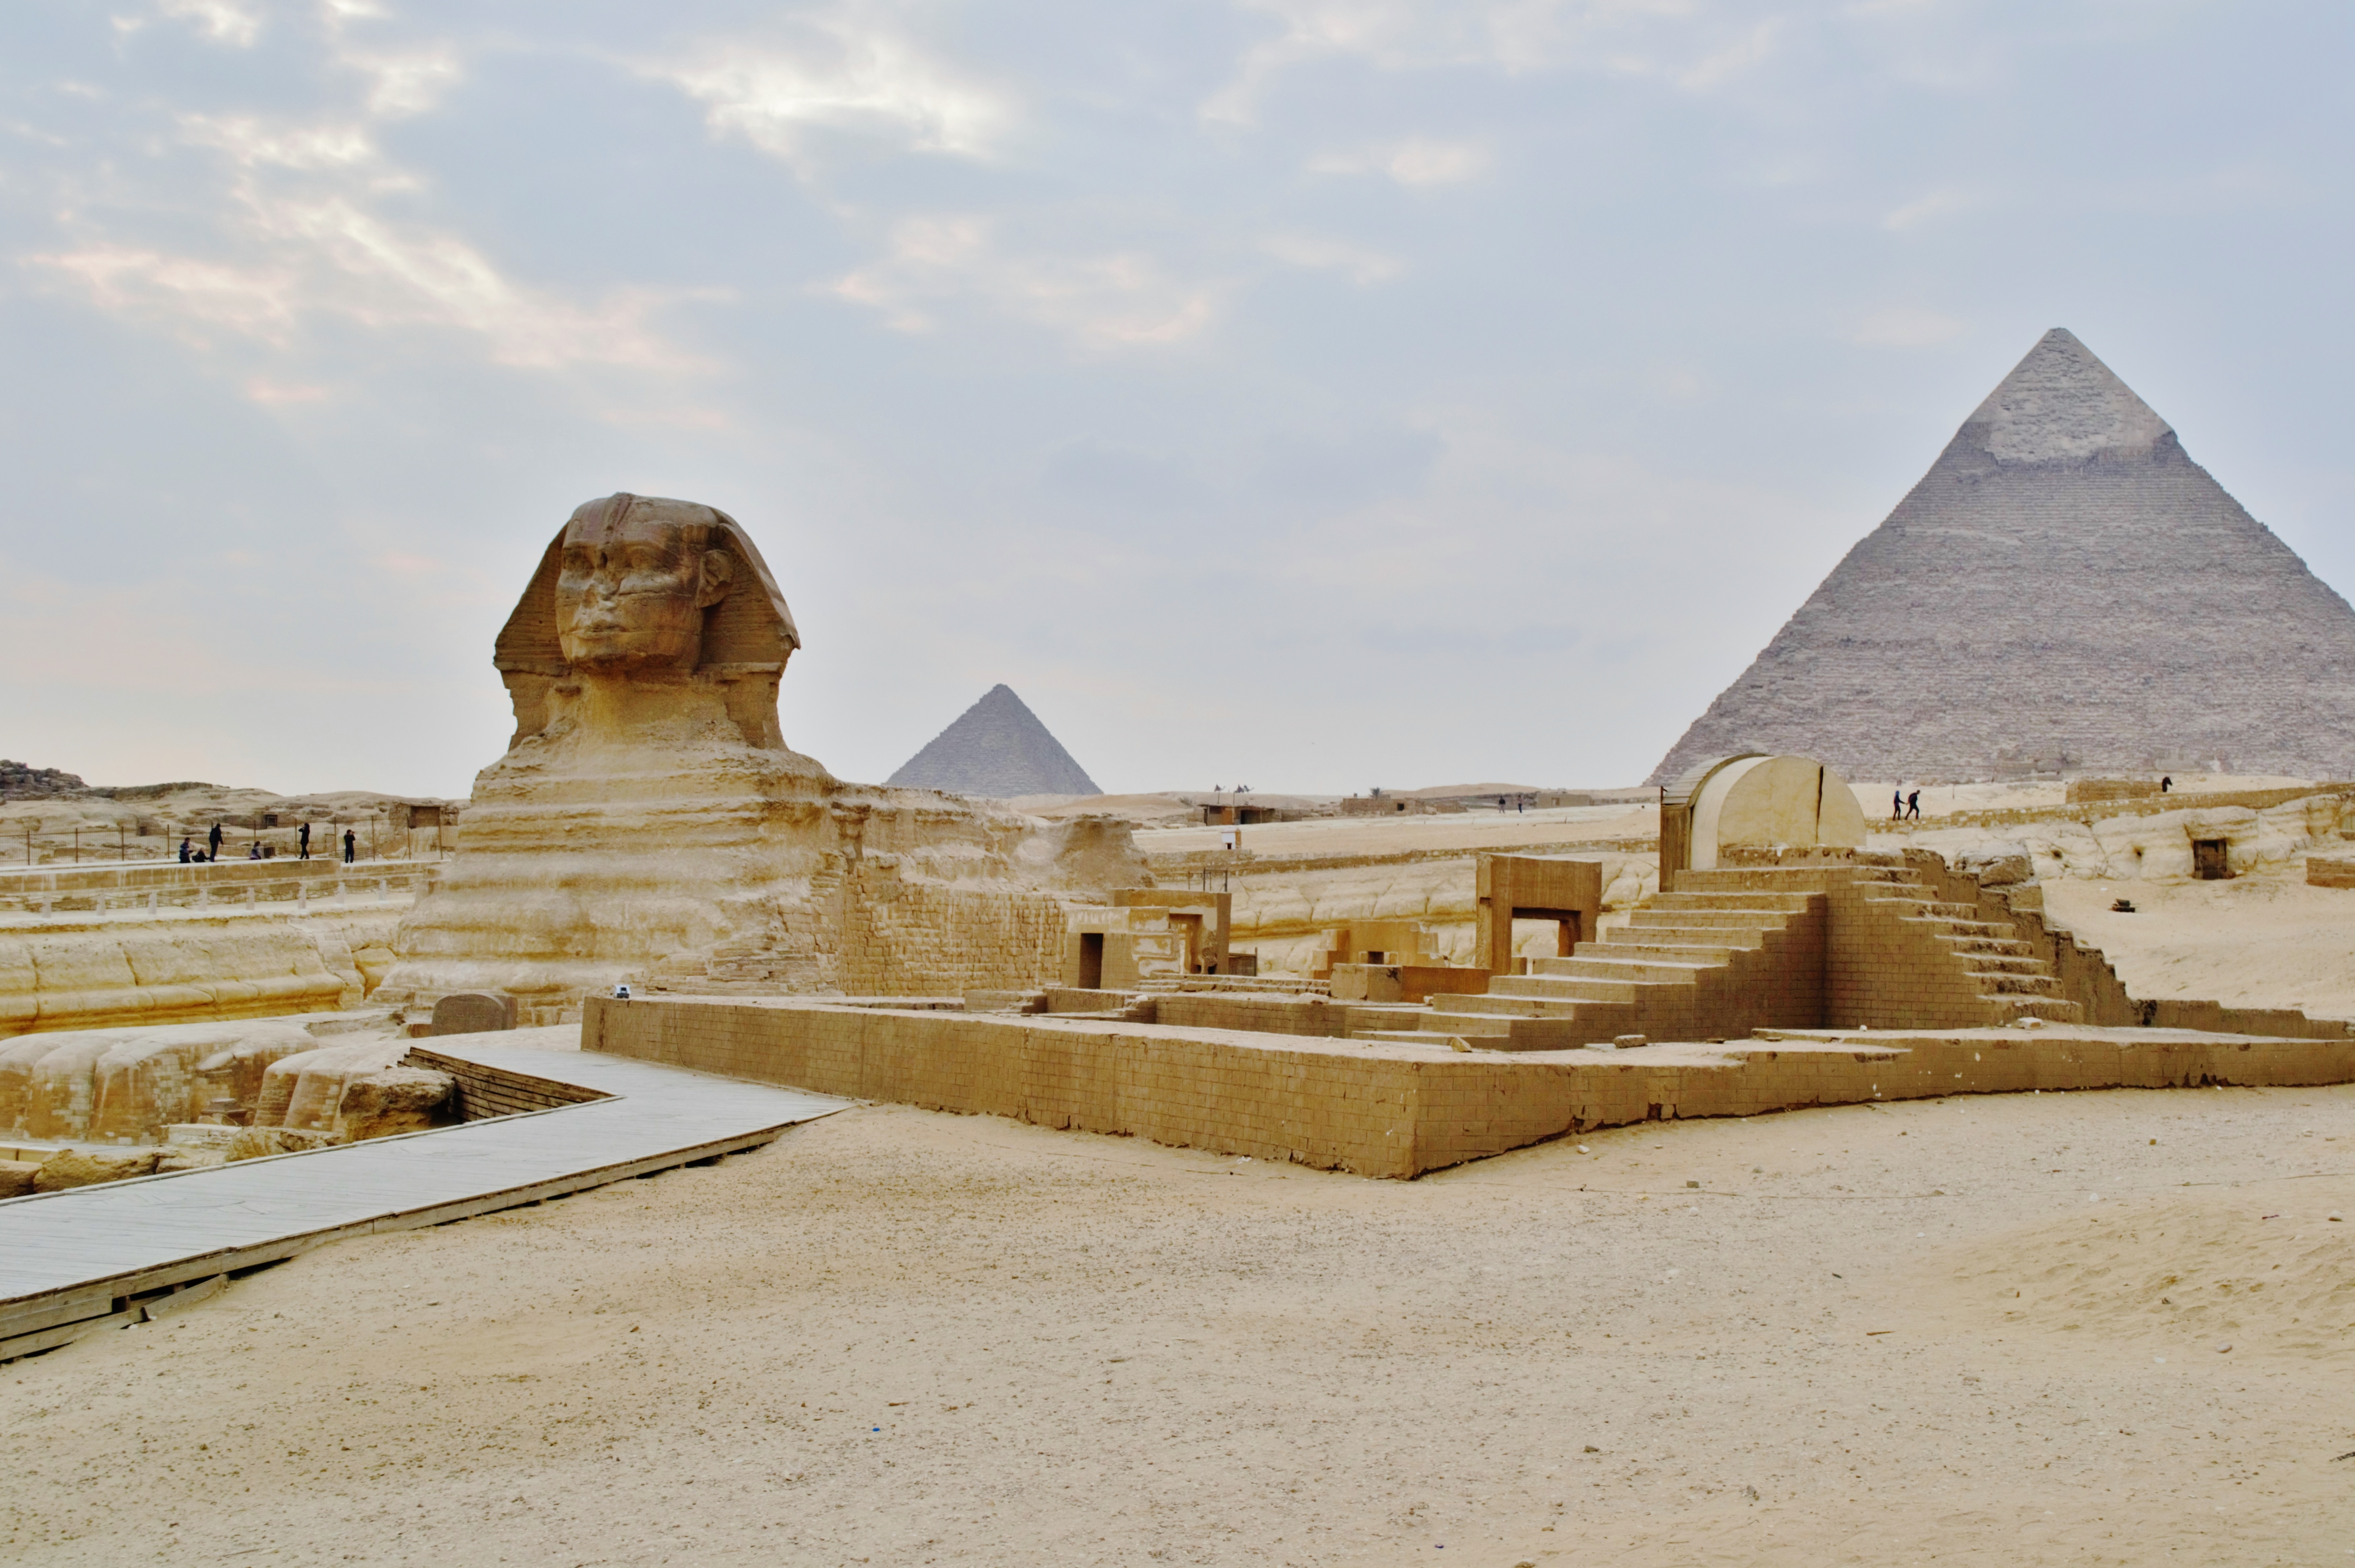 Qatar would like to 'rent' all of Egypt's monuments, historical sites, and antiquities.